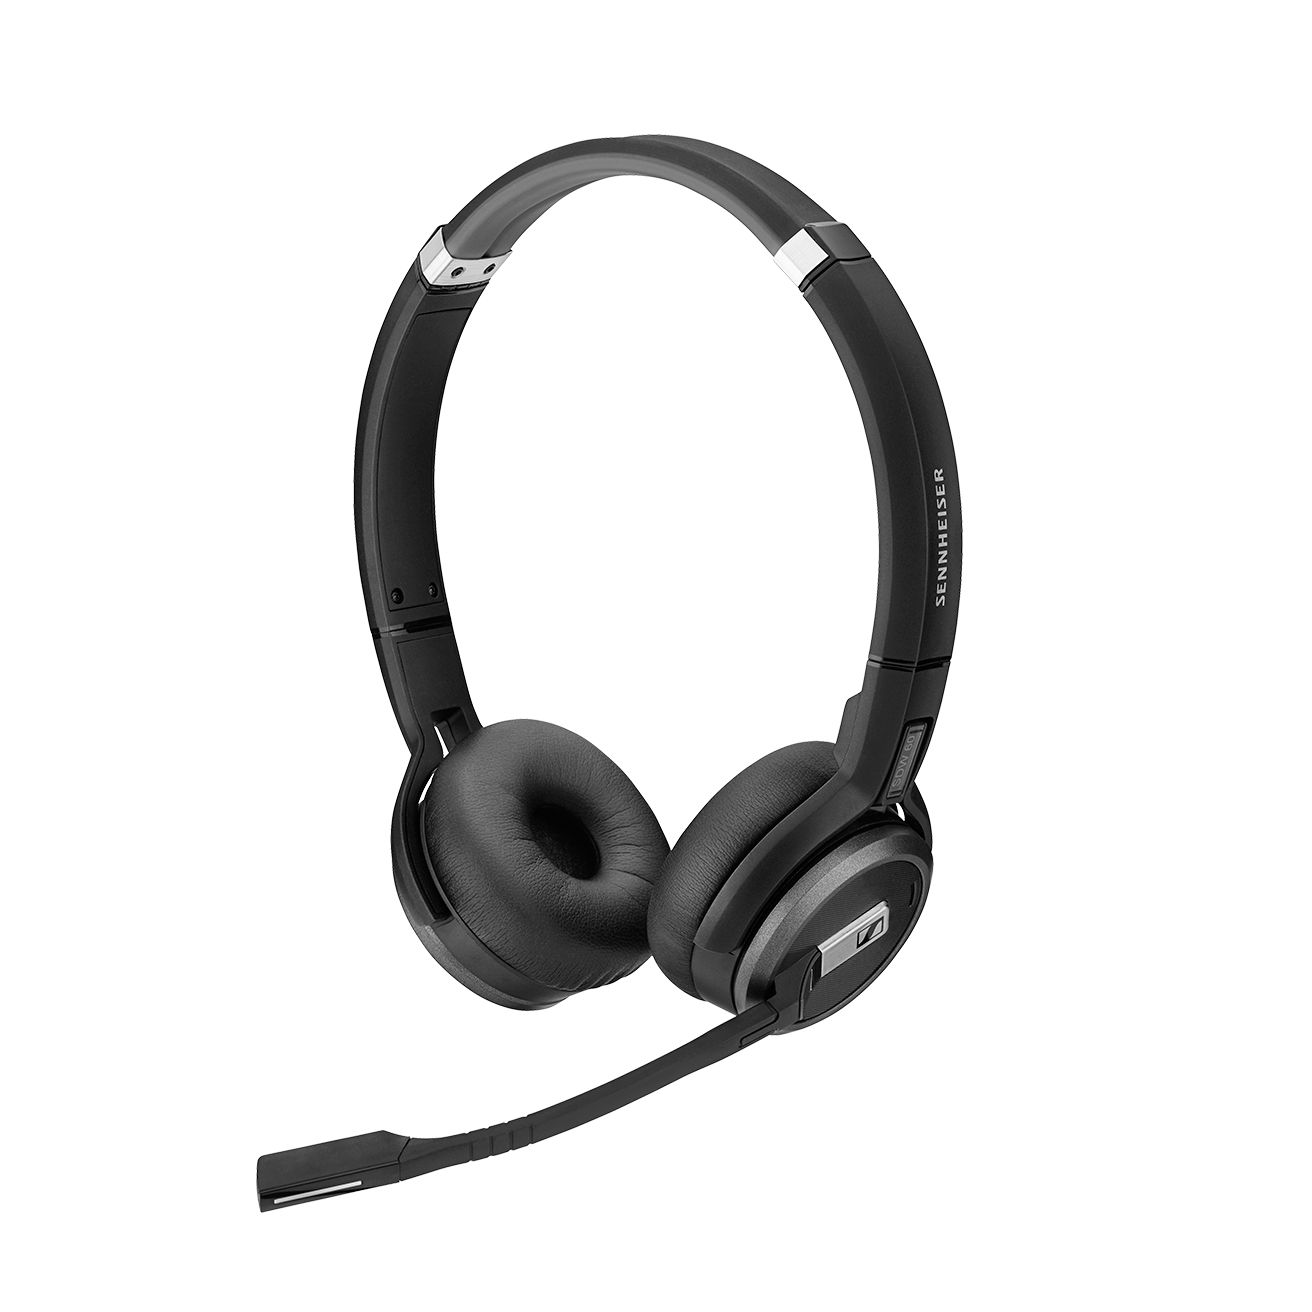 Sennheiser SDW 5065 DECT Wireless Office headset with base station, for desk phone and PC, binaural headset, bendable boom arm